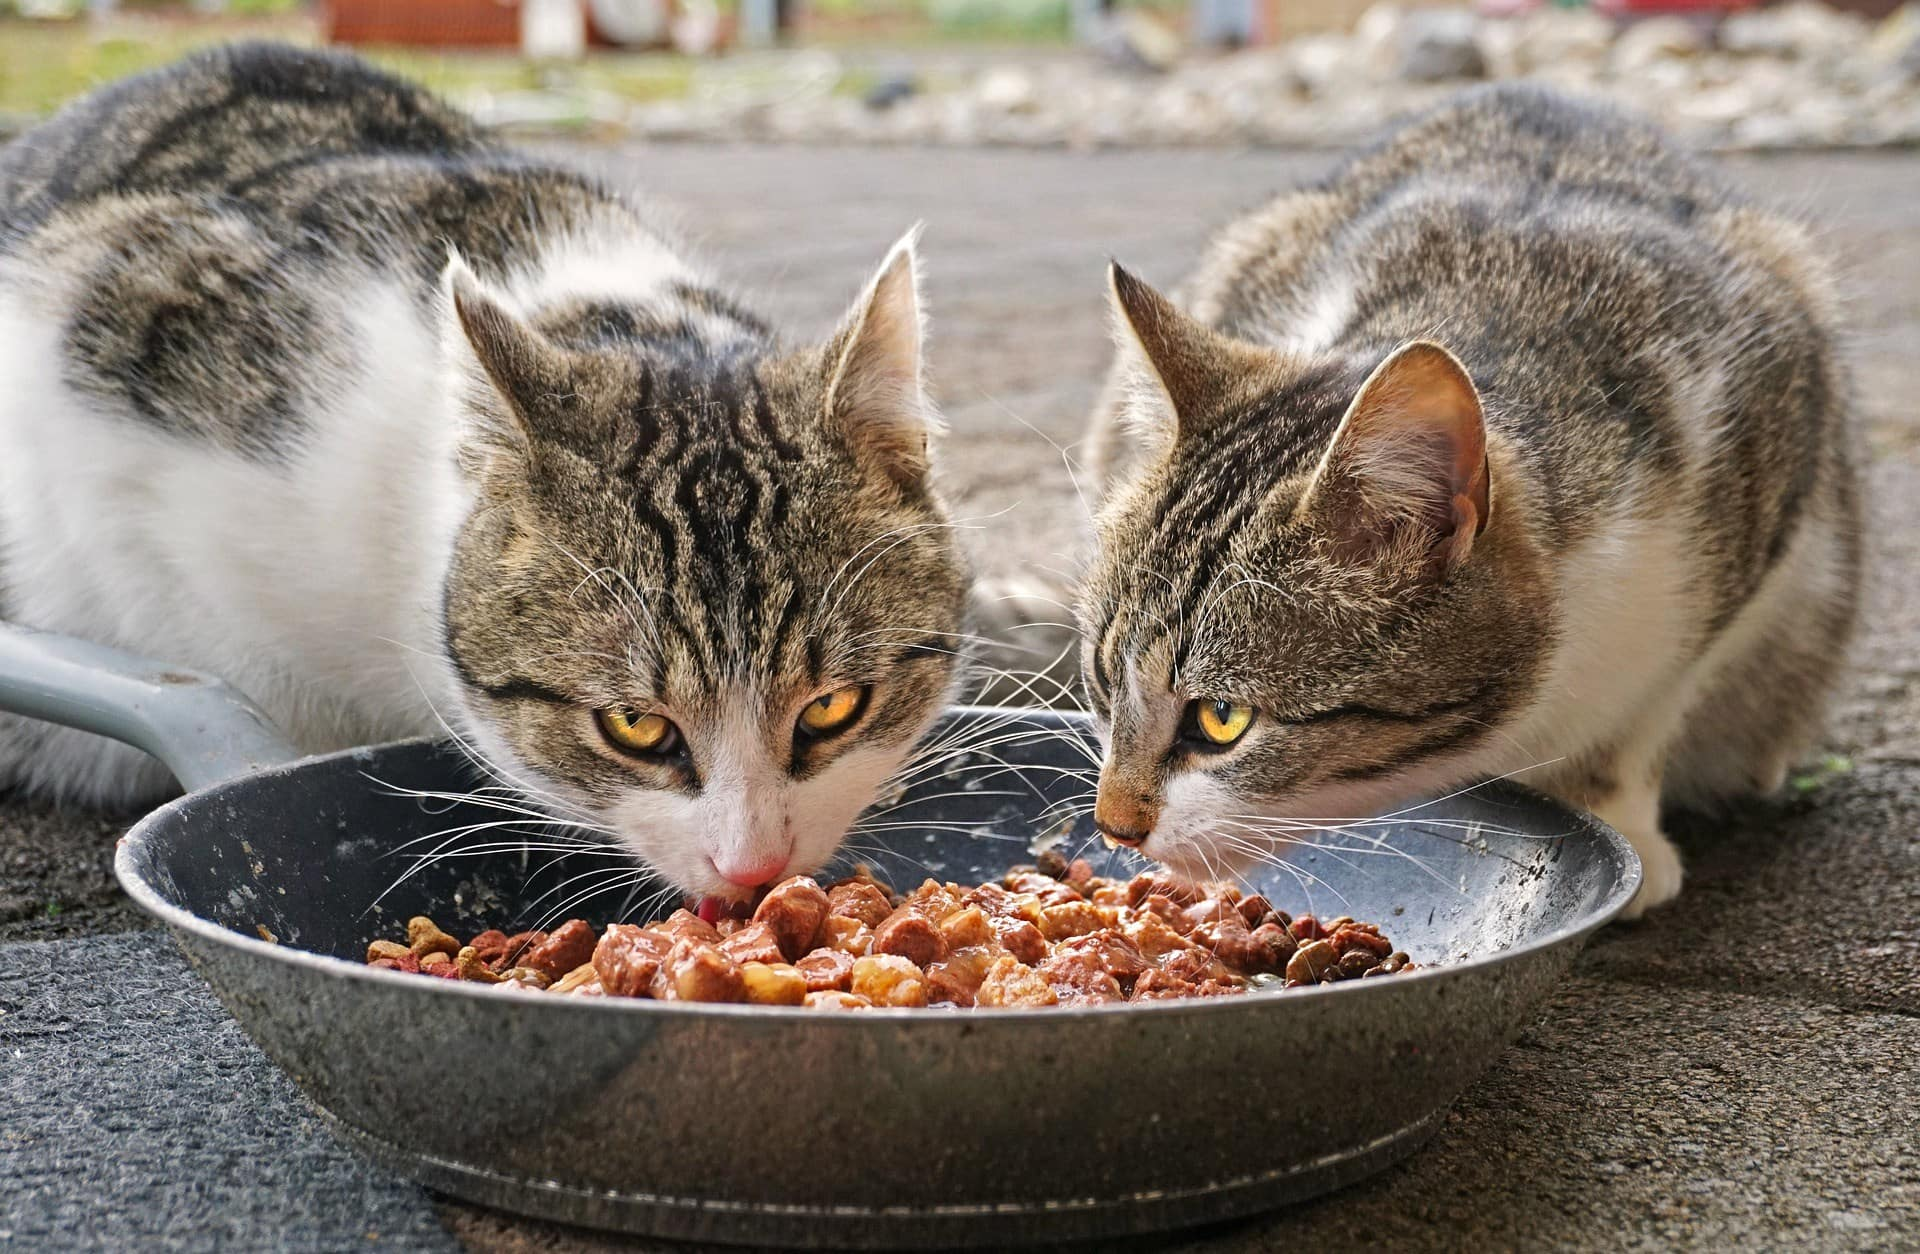 cats eating together